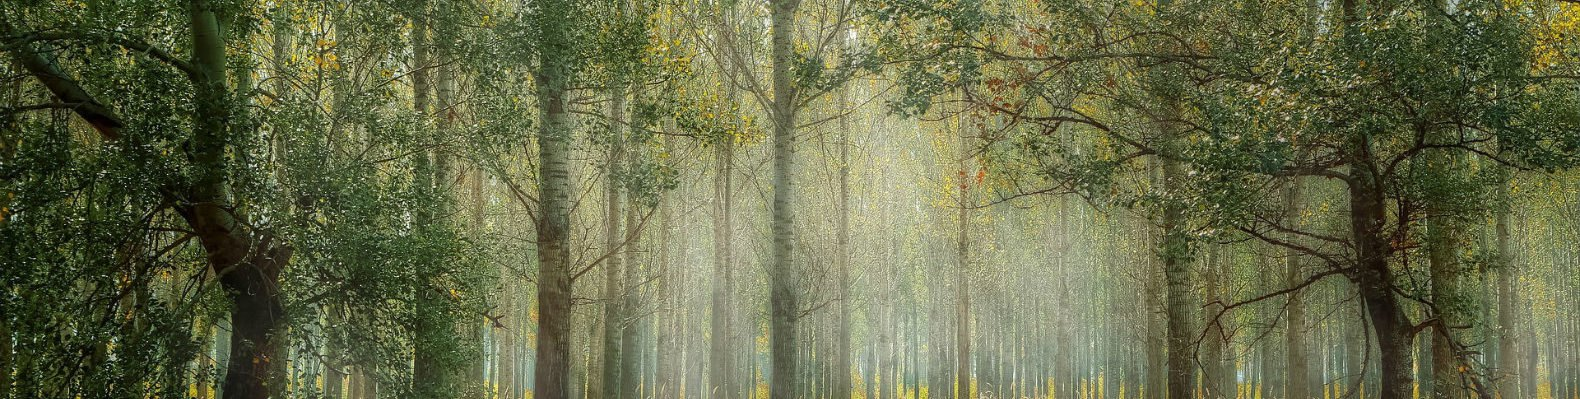 benefits of forest bathing, walking in nature, mental health benefits of forest bathing, health benefits of forest bathing, where to forest bathe, Japanese forest bathing